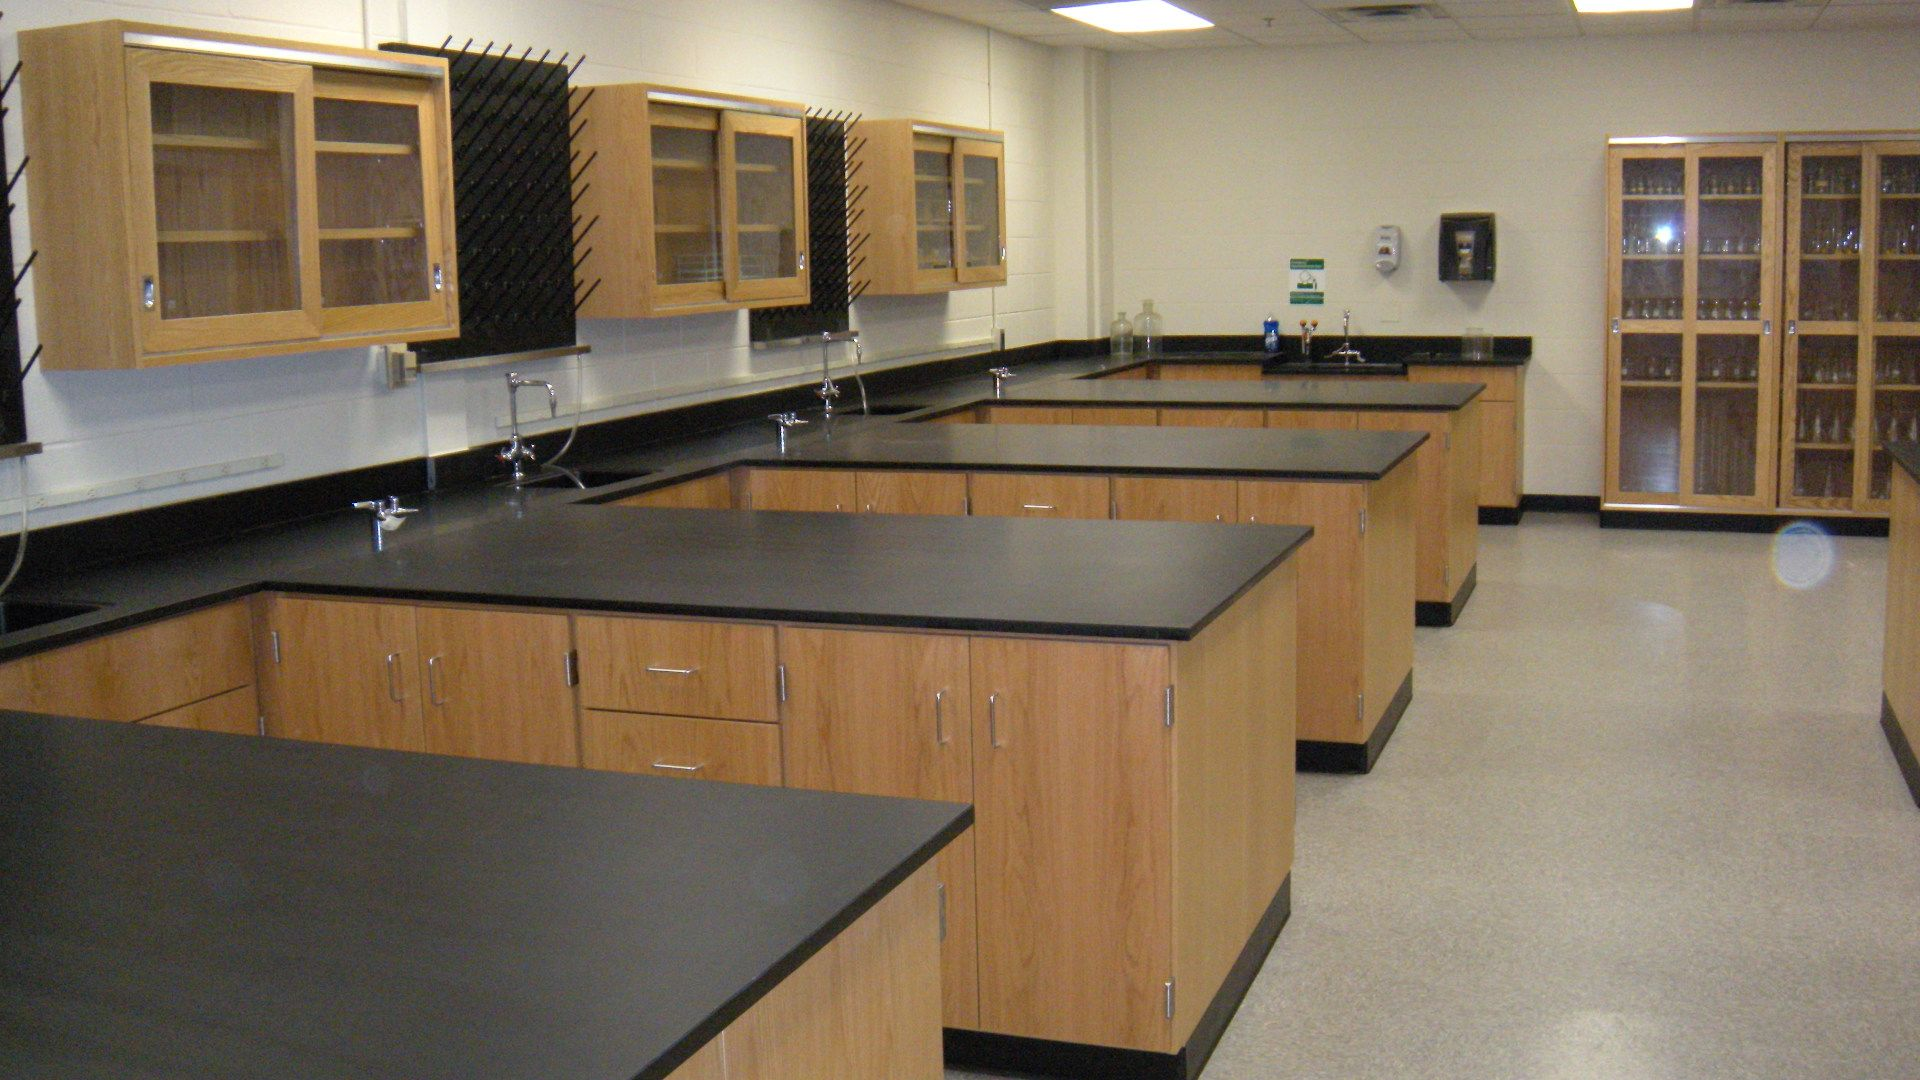 impressive new science lab furniture picture | laboratory